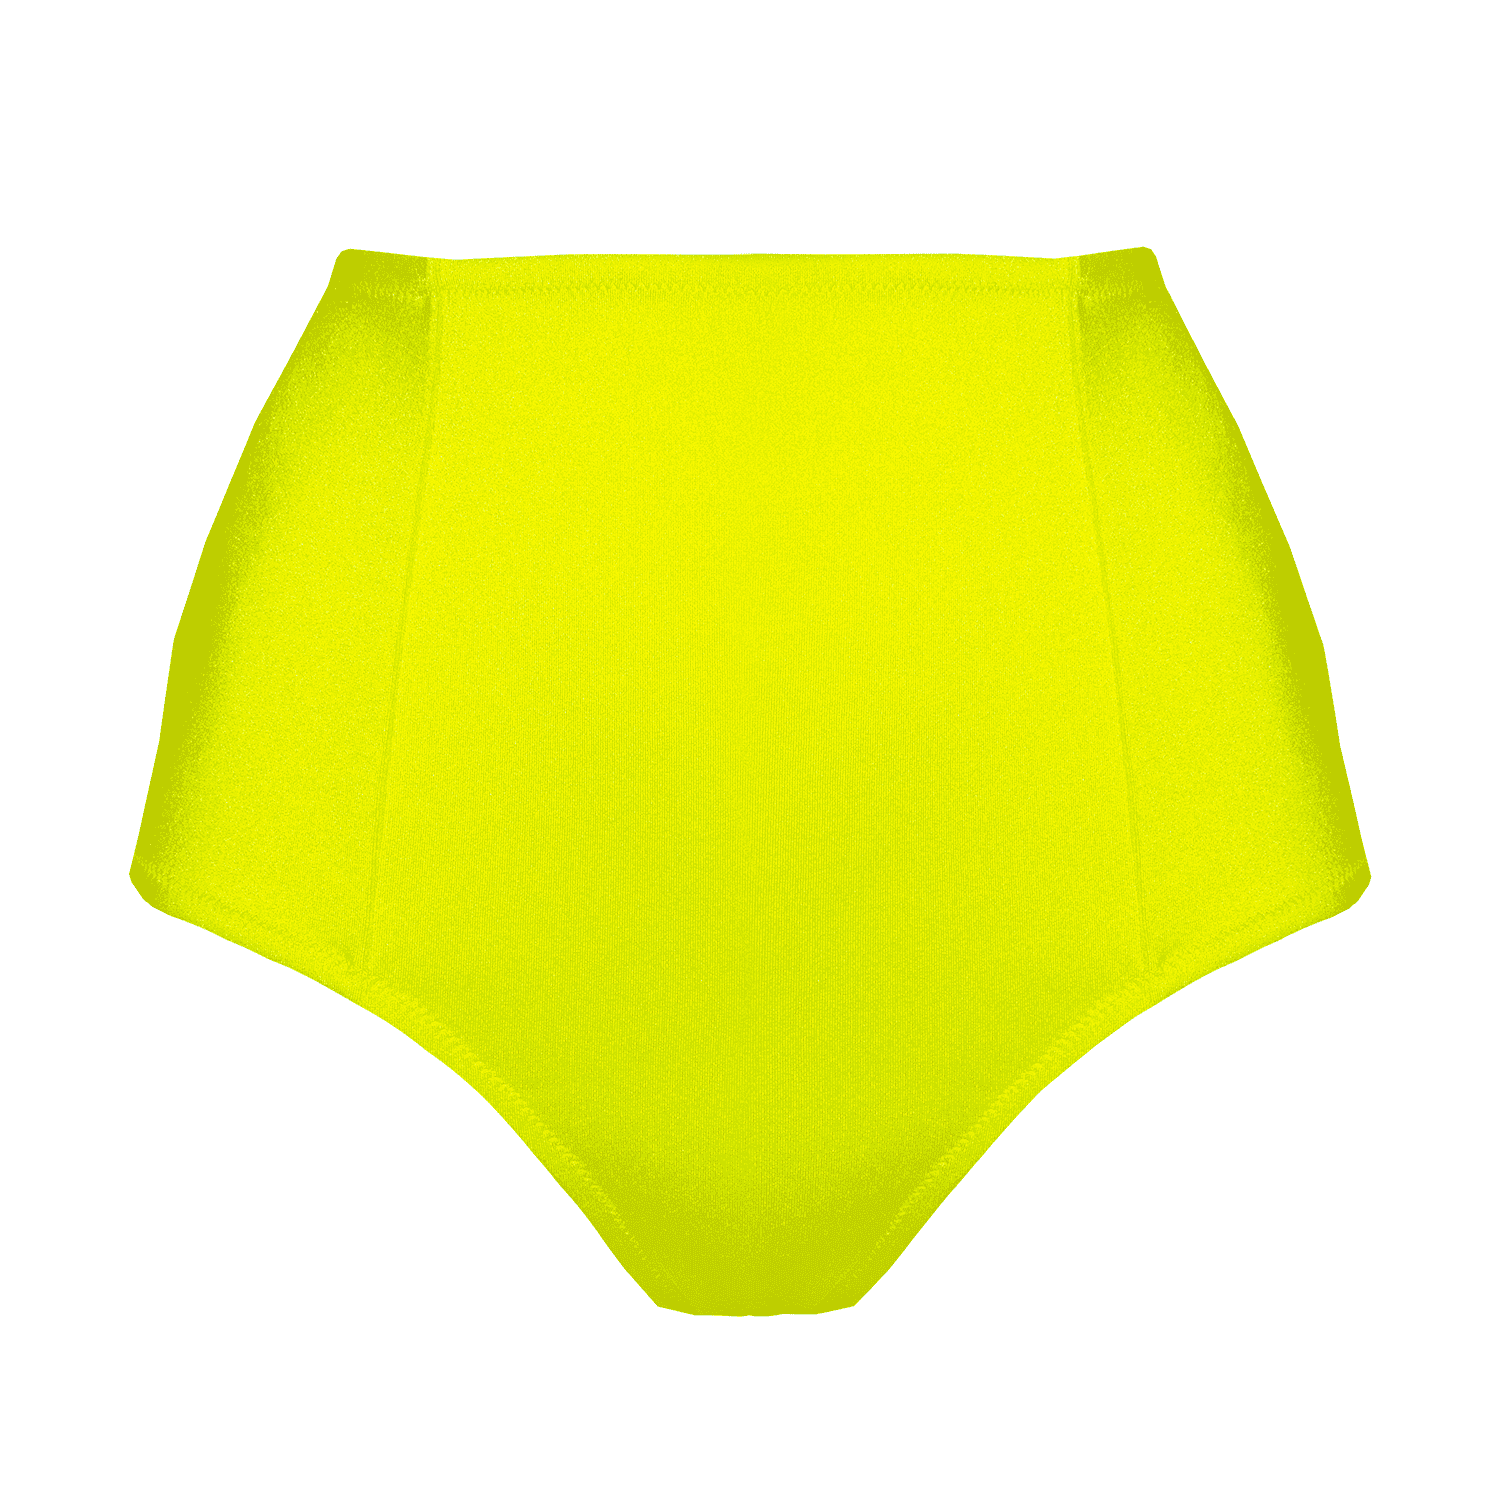 Designer swimsuit, high bottom, exclusive, comfortable, loveJilty, bright, neon, yellow, high panties, high waisted, basic swimsuit, smooth, comfortable, wear-resistant, dries quickly, minimalistic, bright, sporty, fashionable, simple